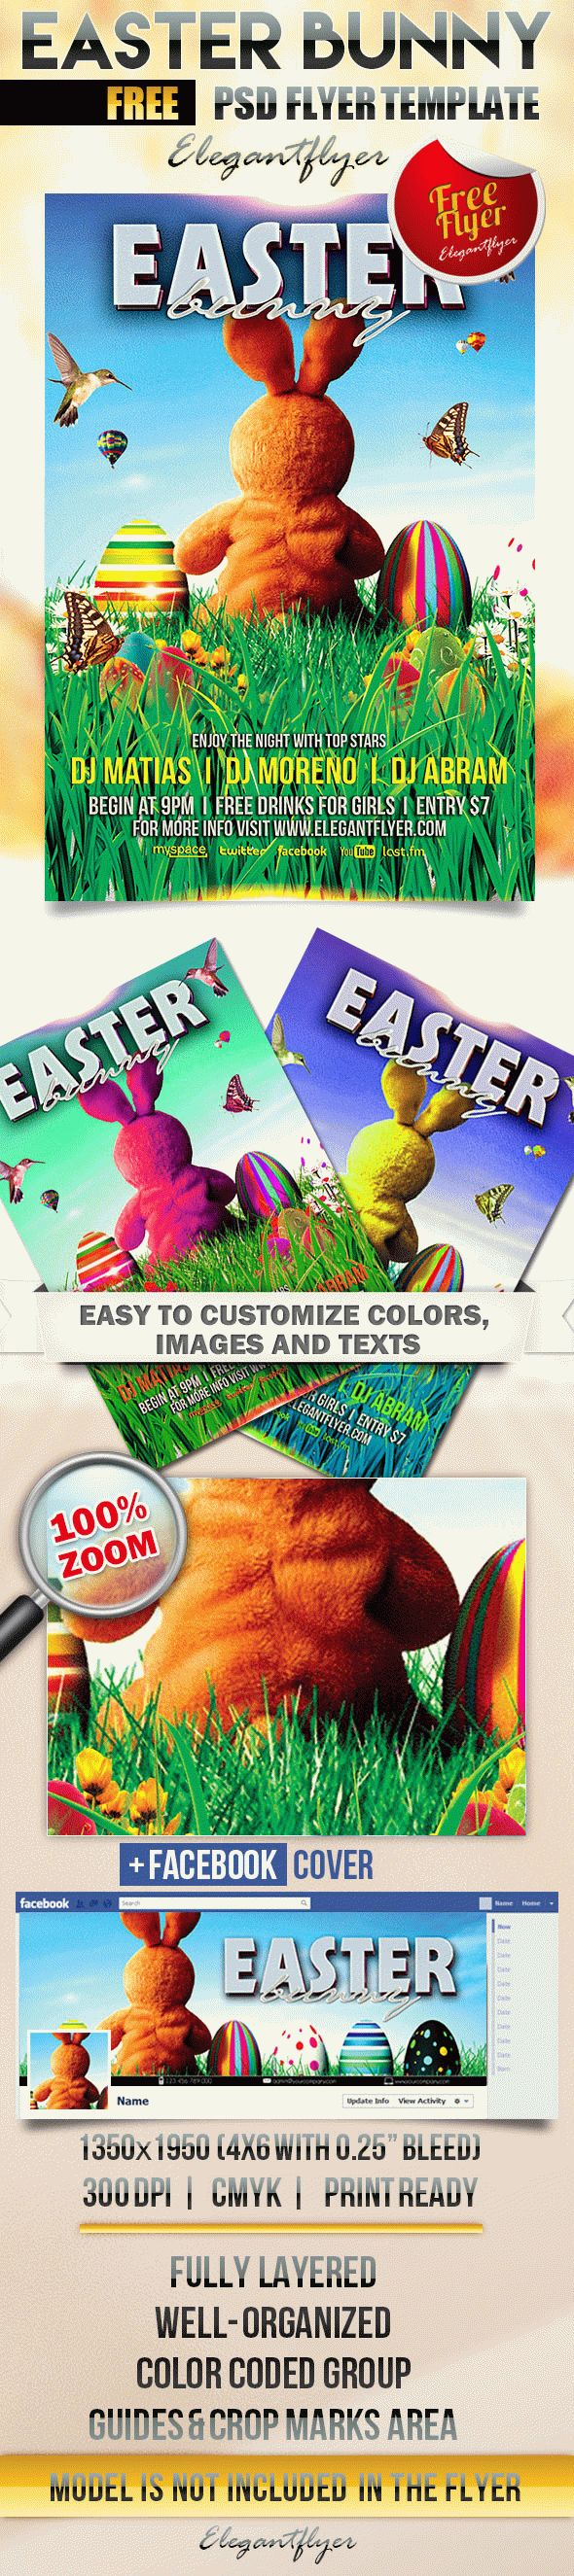 Easter Bunny – Free Flyer PSD Template + Facebook Cover